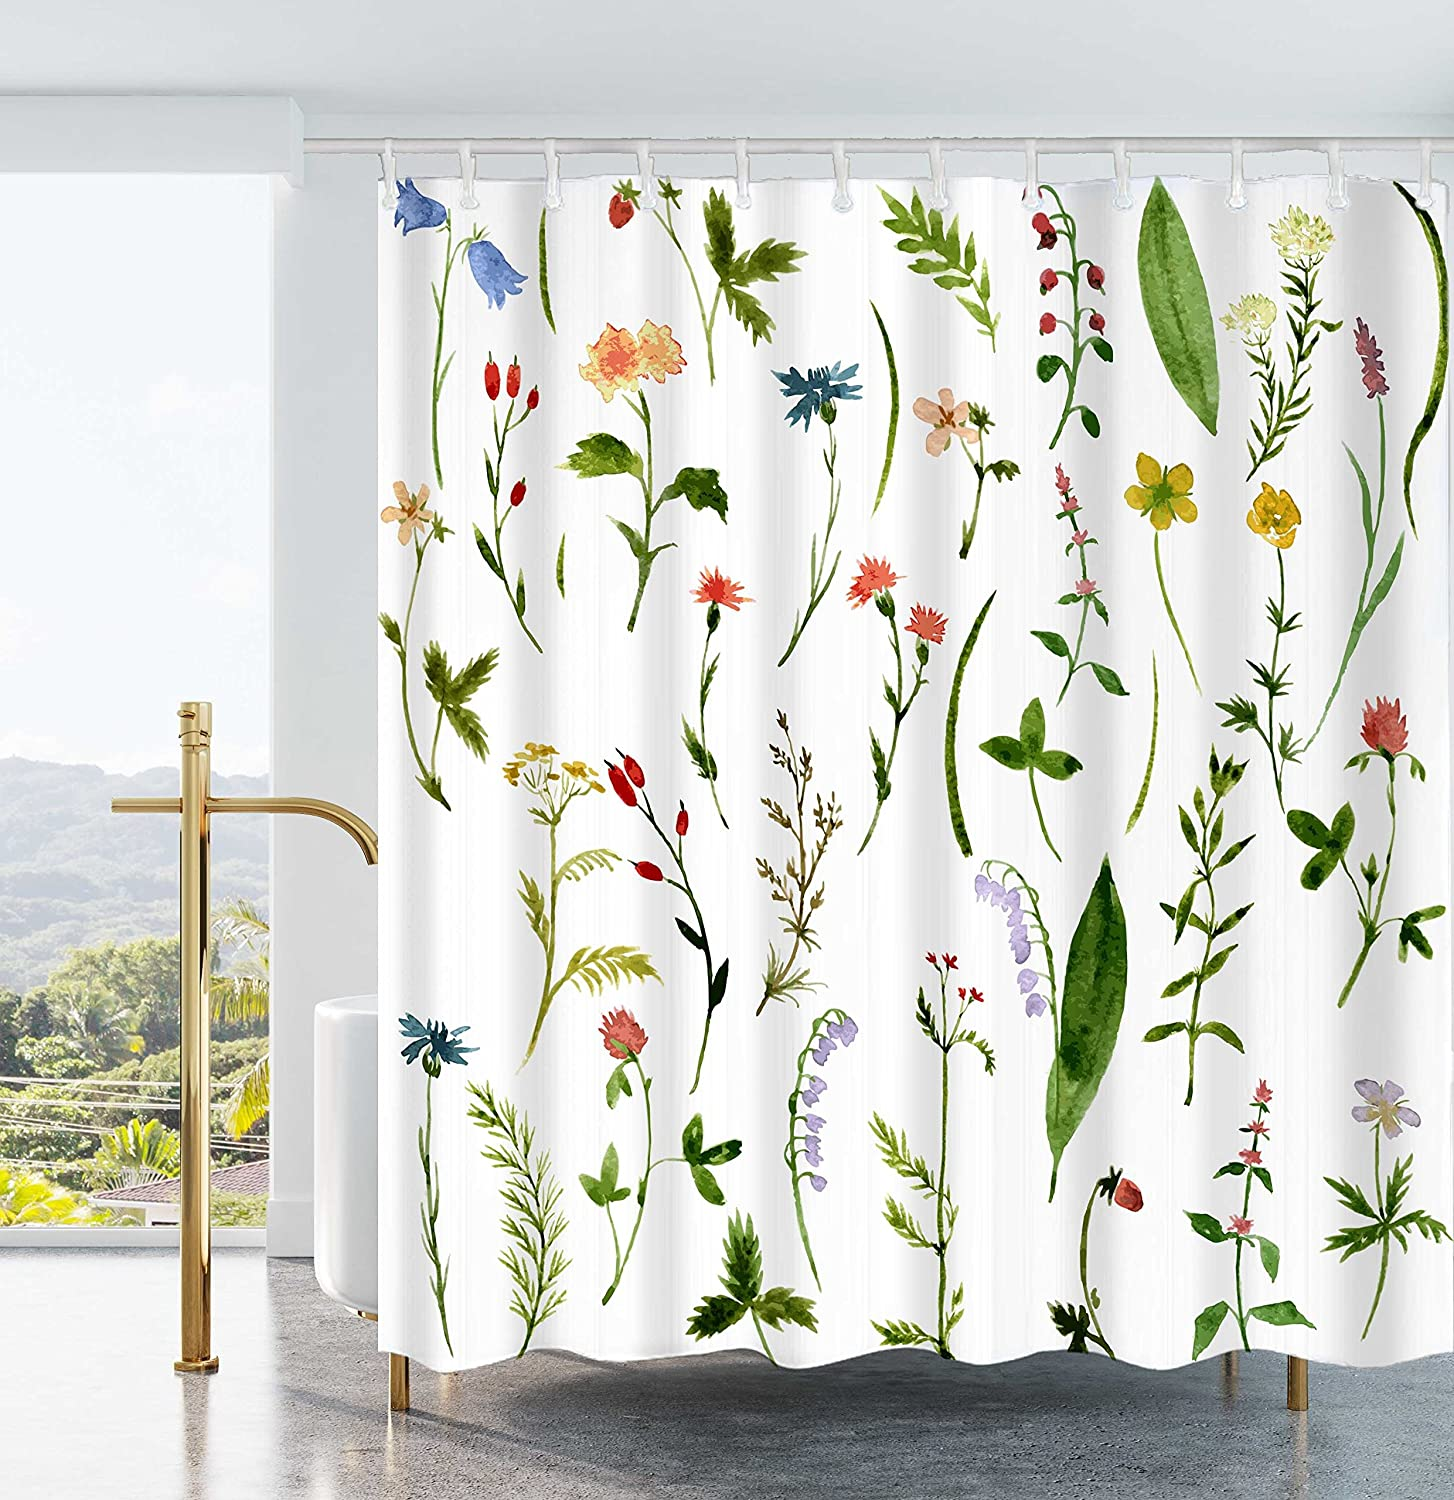 Amazon Ao Blare Leaves Plants Shower Curtain Bloom Flower Green Waterproof Polyester Fabric 72x72Inch Home Kitchen